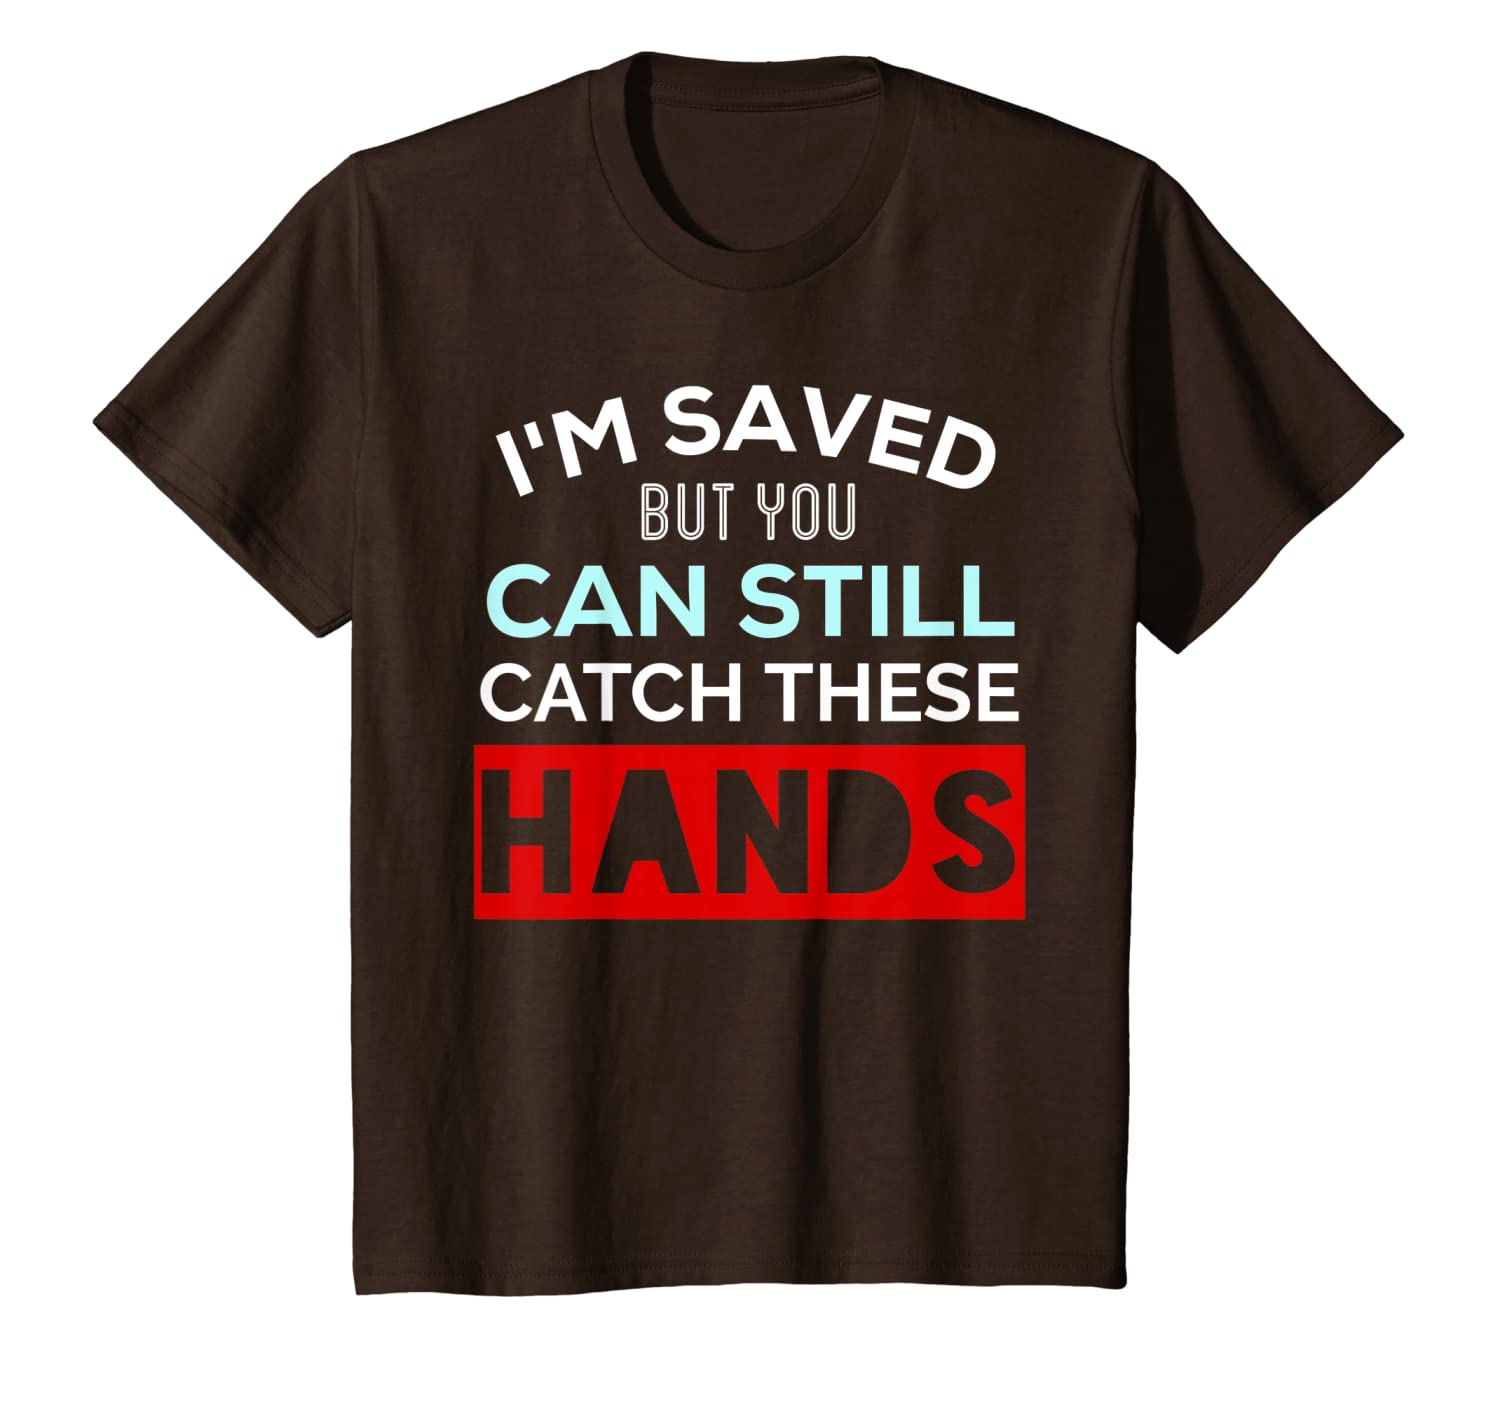 ee626e58fb7af Amazon.com: I'm Saved But You Can Still Catch These Hands Funny T ...